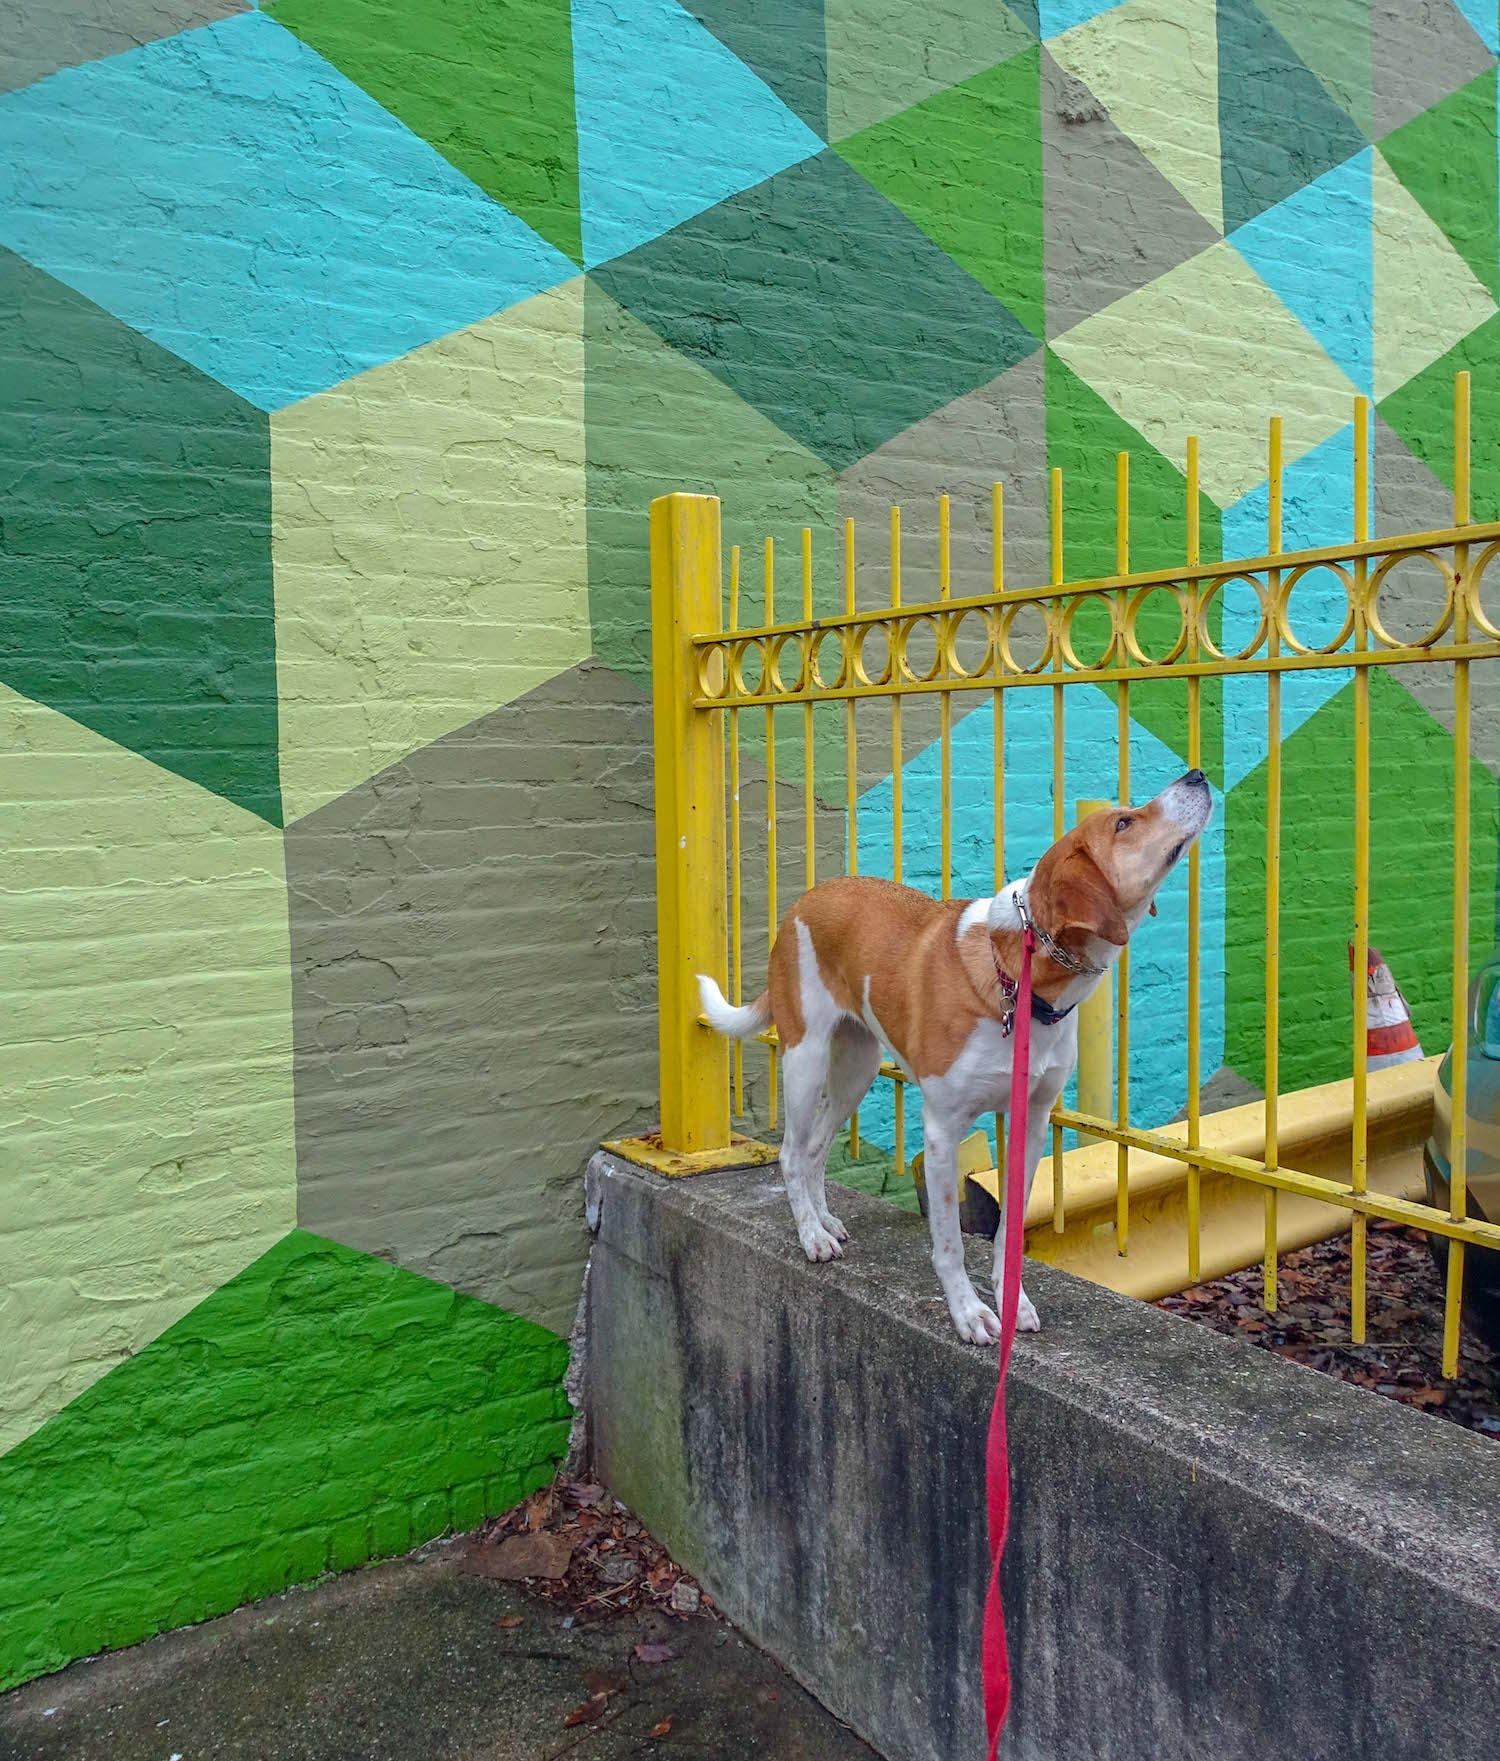 LOCATION: Findlay Market parking lot / Mollie is a local Instagram celebrity. Famous for posing on fire hydrants in front of ArtWorks murals (and other Cincy landmarks), this hound dog has officially stolen our hearts. You can follow her adventures on Instagram @molliethehounddoggie / Image: Patti Mossey (Mollie's owner and #1 fan) // Published: 5.1.18